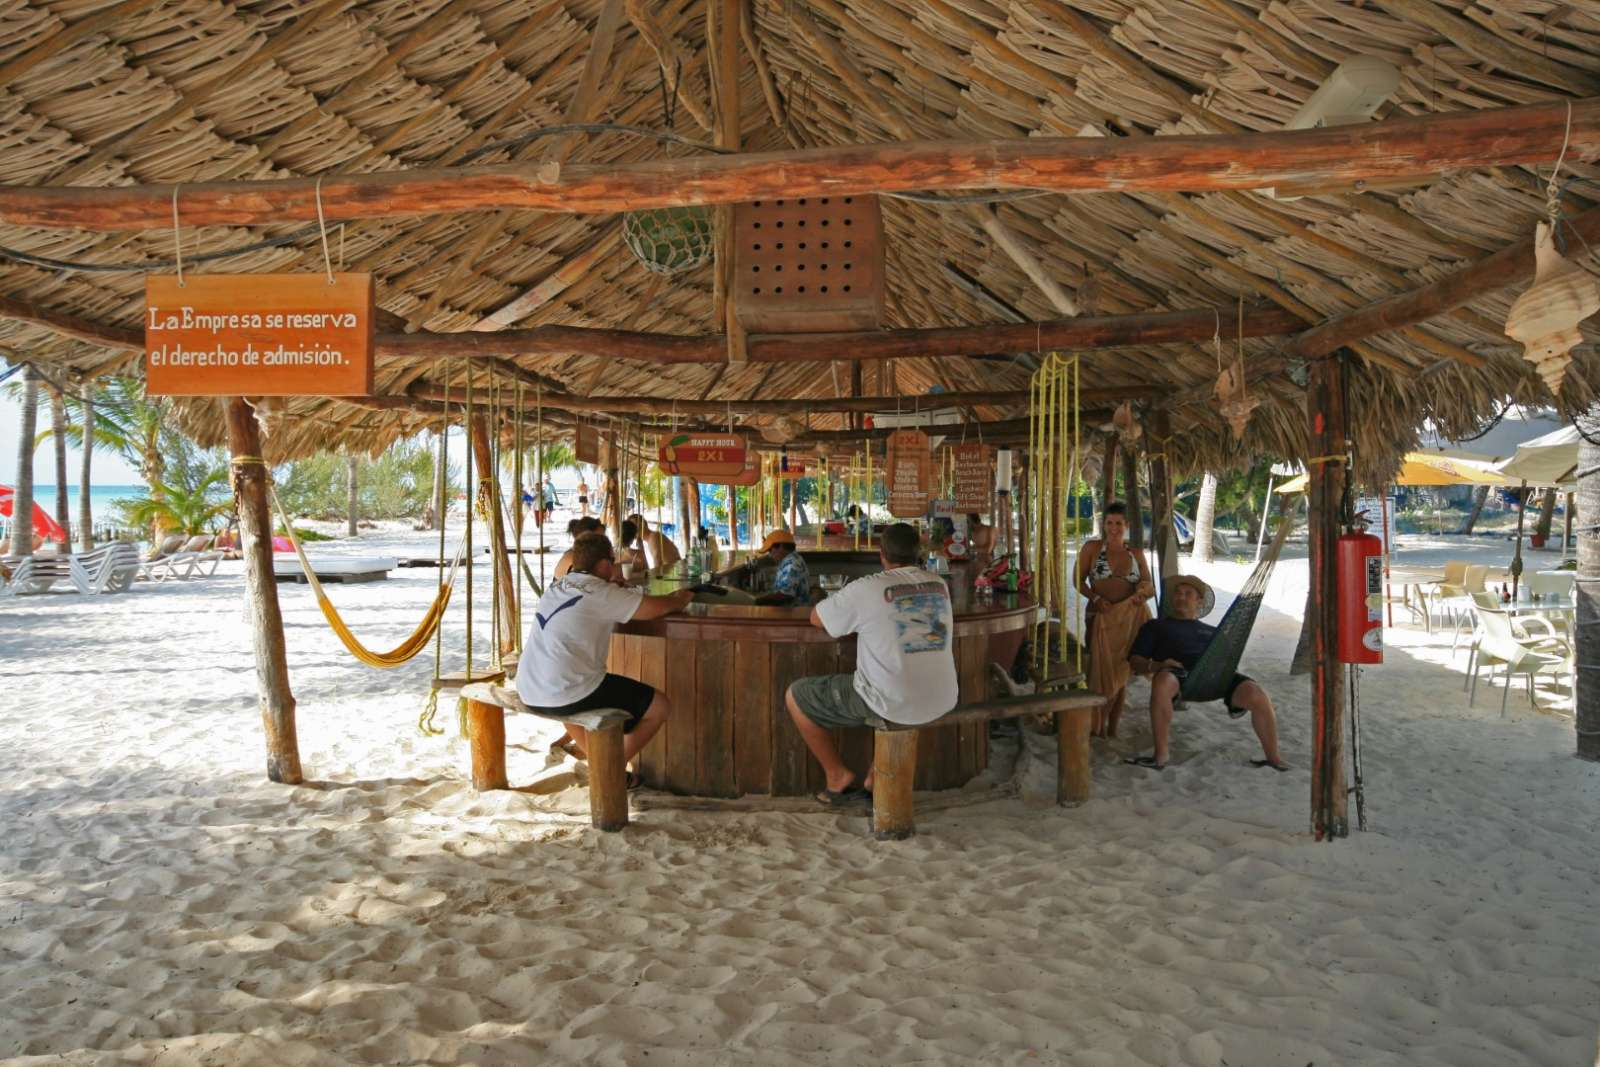 Beach bar on Isla Mujeres Mexico